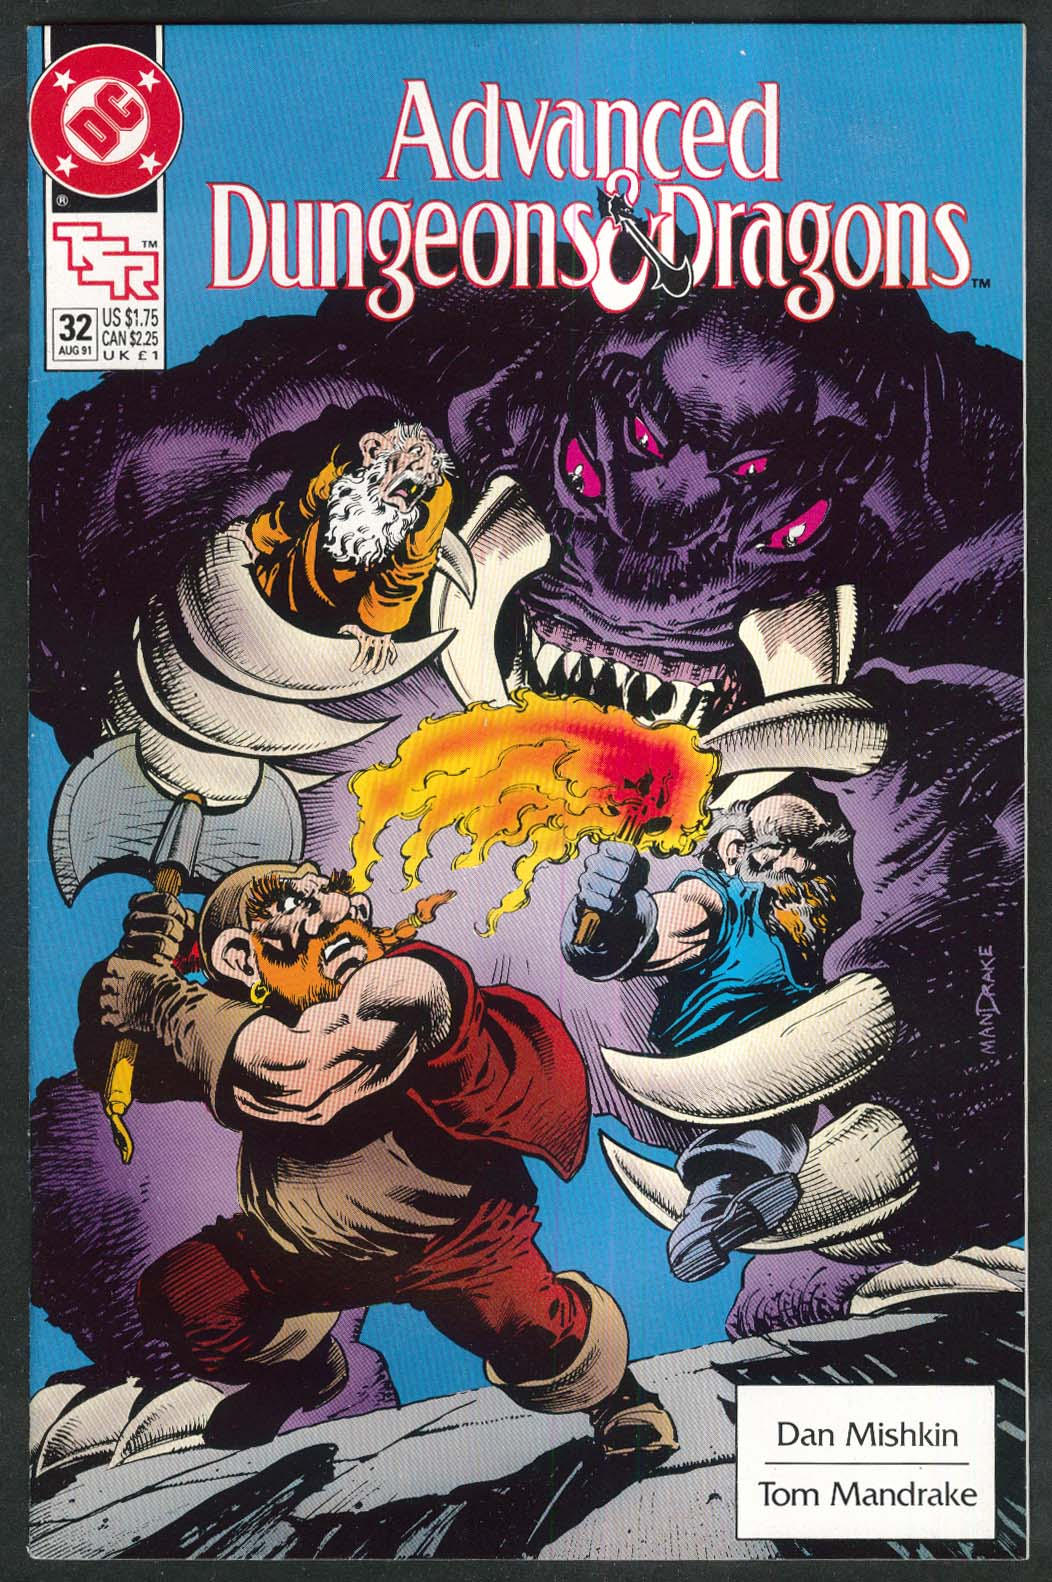 ADVANCED DUNGEONS & DRAGONS #32 DC TSR comic book 8 1991